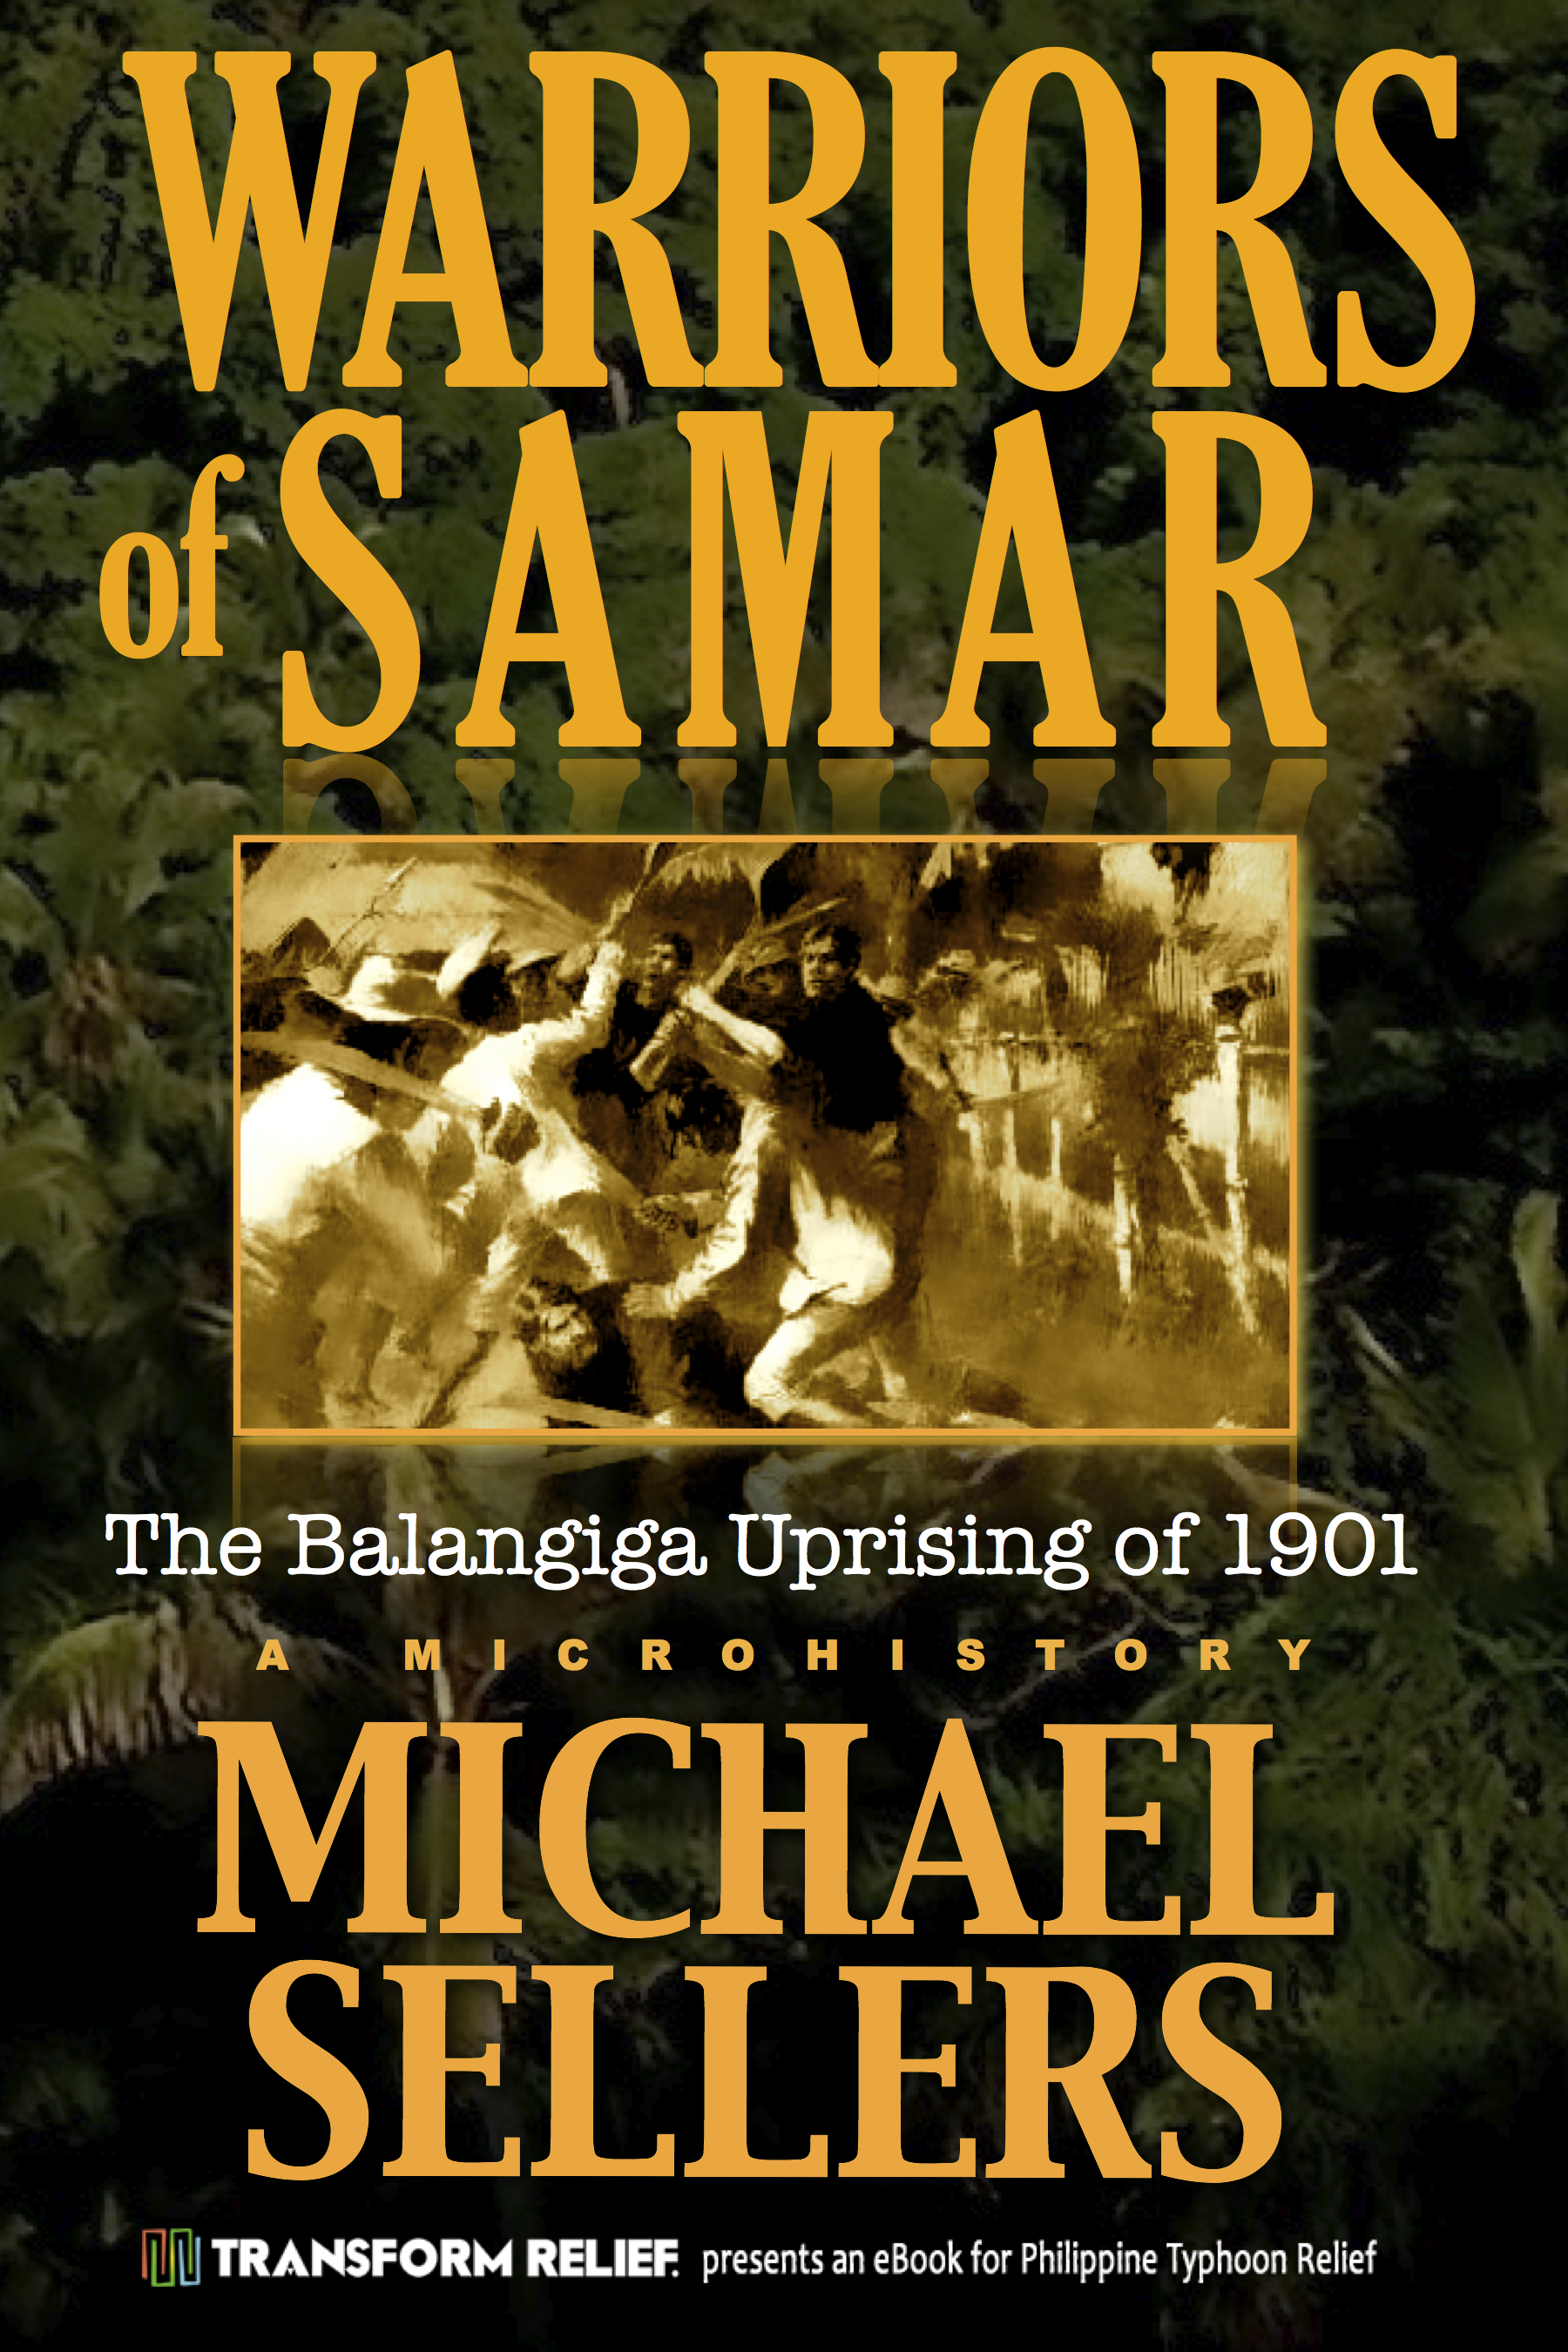 Warriors of Samar